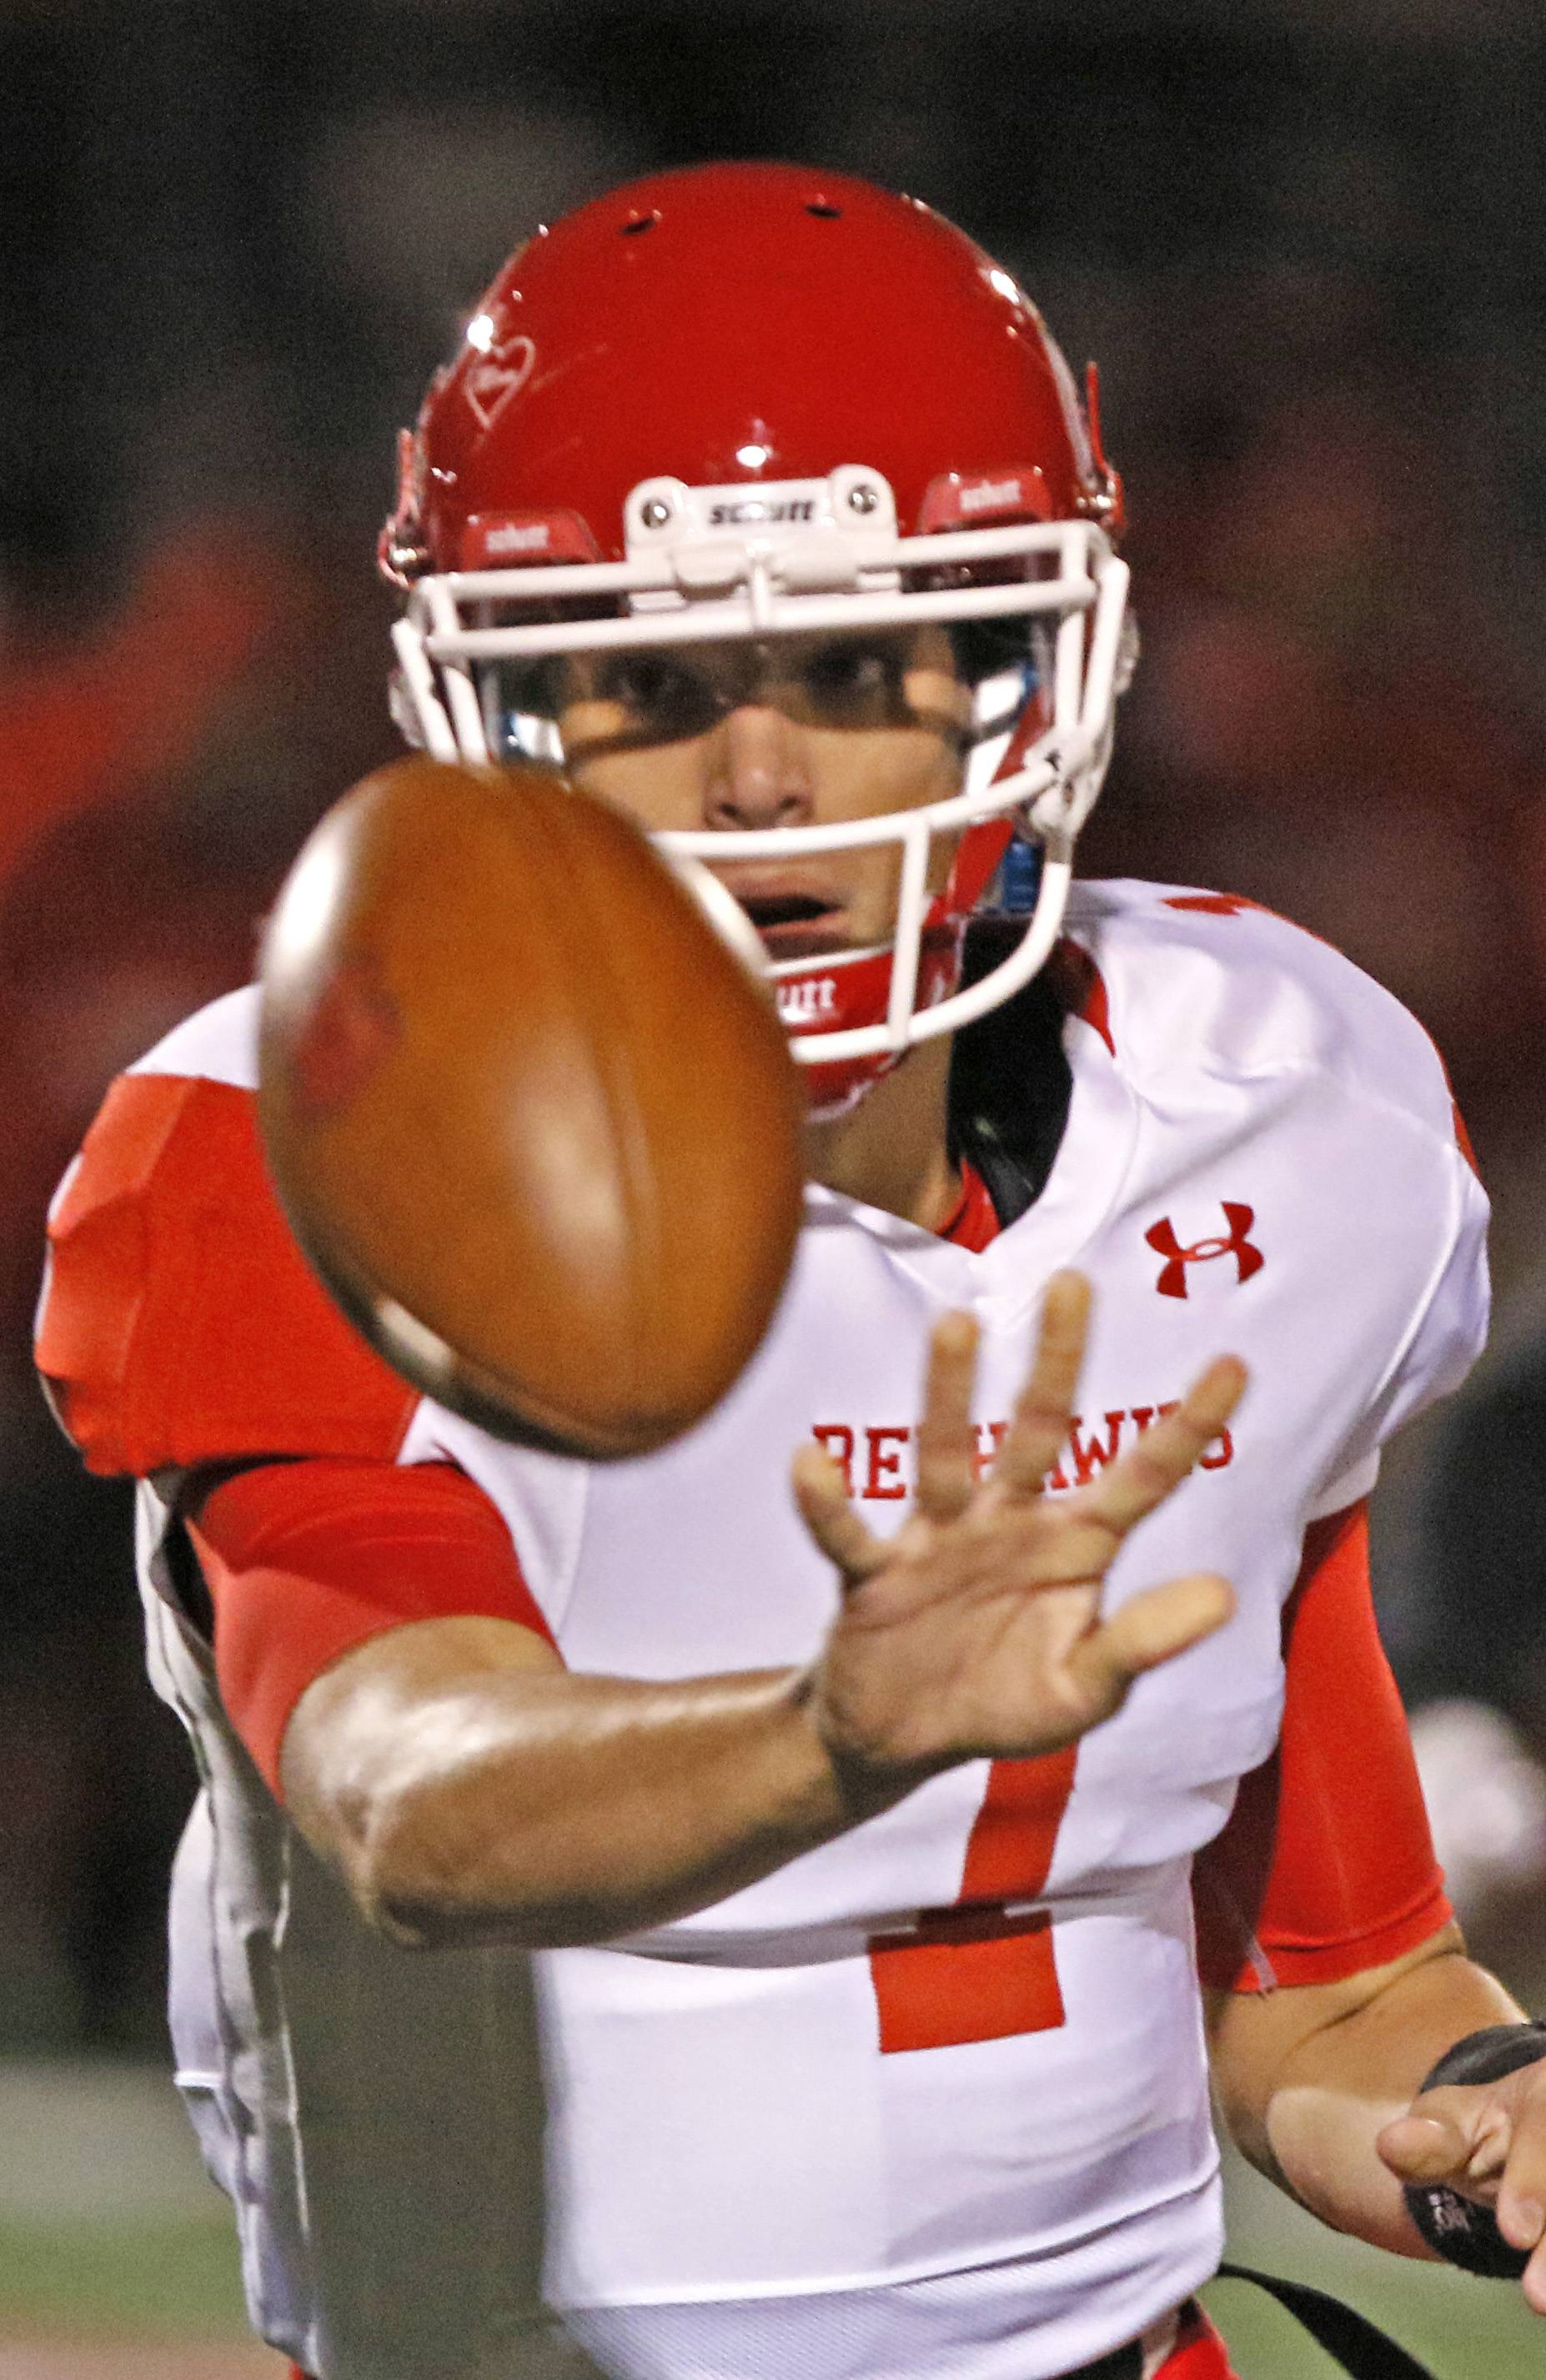 Naperville Central quarterback Payton Thorne pitches the football to a teammate against Homewood-Flossmoor during second round Class 8A football playoffs.